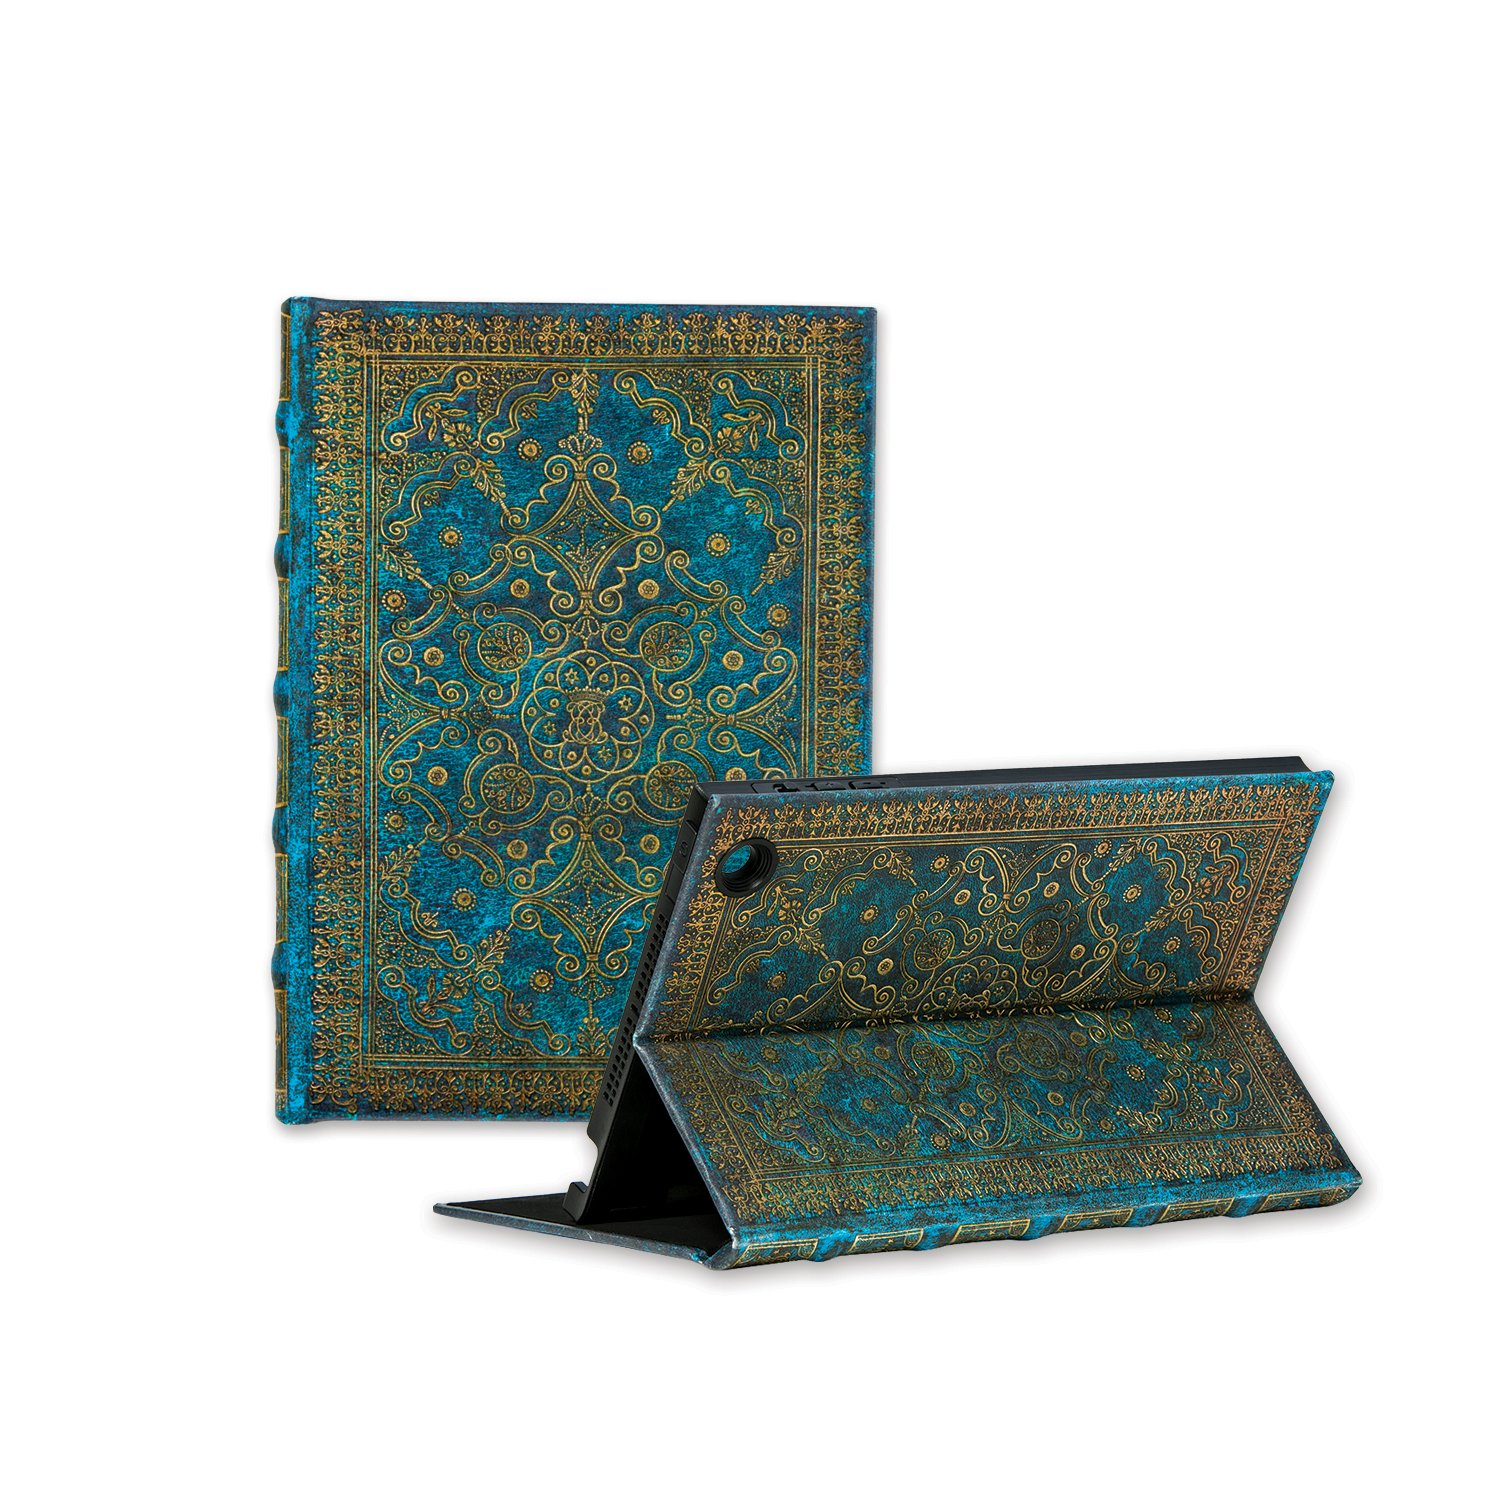 Paperblanks eXchange Tablet Jacket for Apple iPad mini 1/2/3, Infinite Viewing Angle Case – Azure Design by Paperblanks Hartley & Marks Publishers Inc.